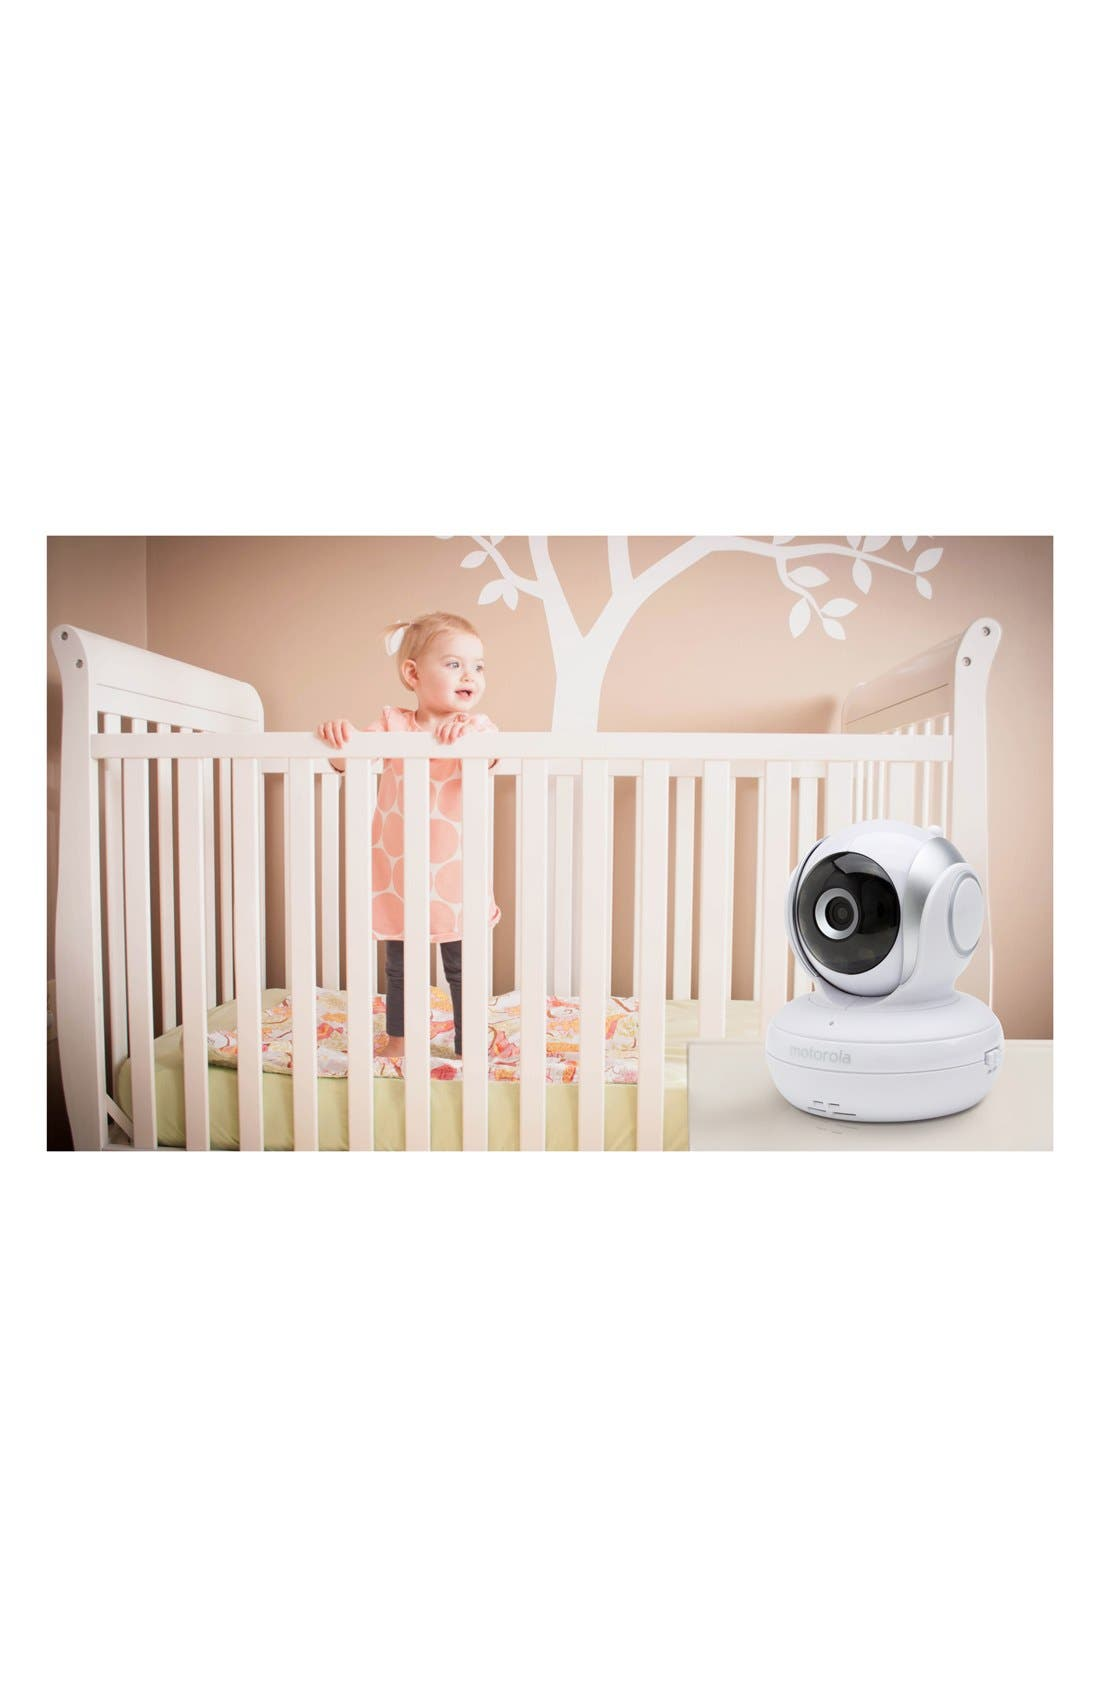 MBP 33S Wireless Digital Video Baby Monitor,                             Alternate thumbnail 4, color,                             WHITE/ SILVER TRIM